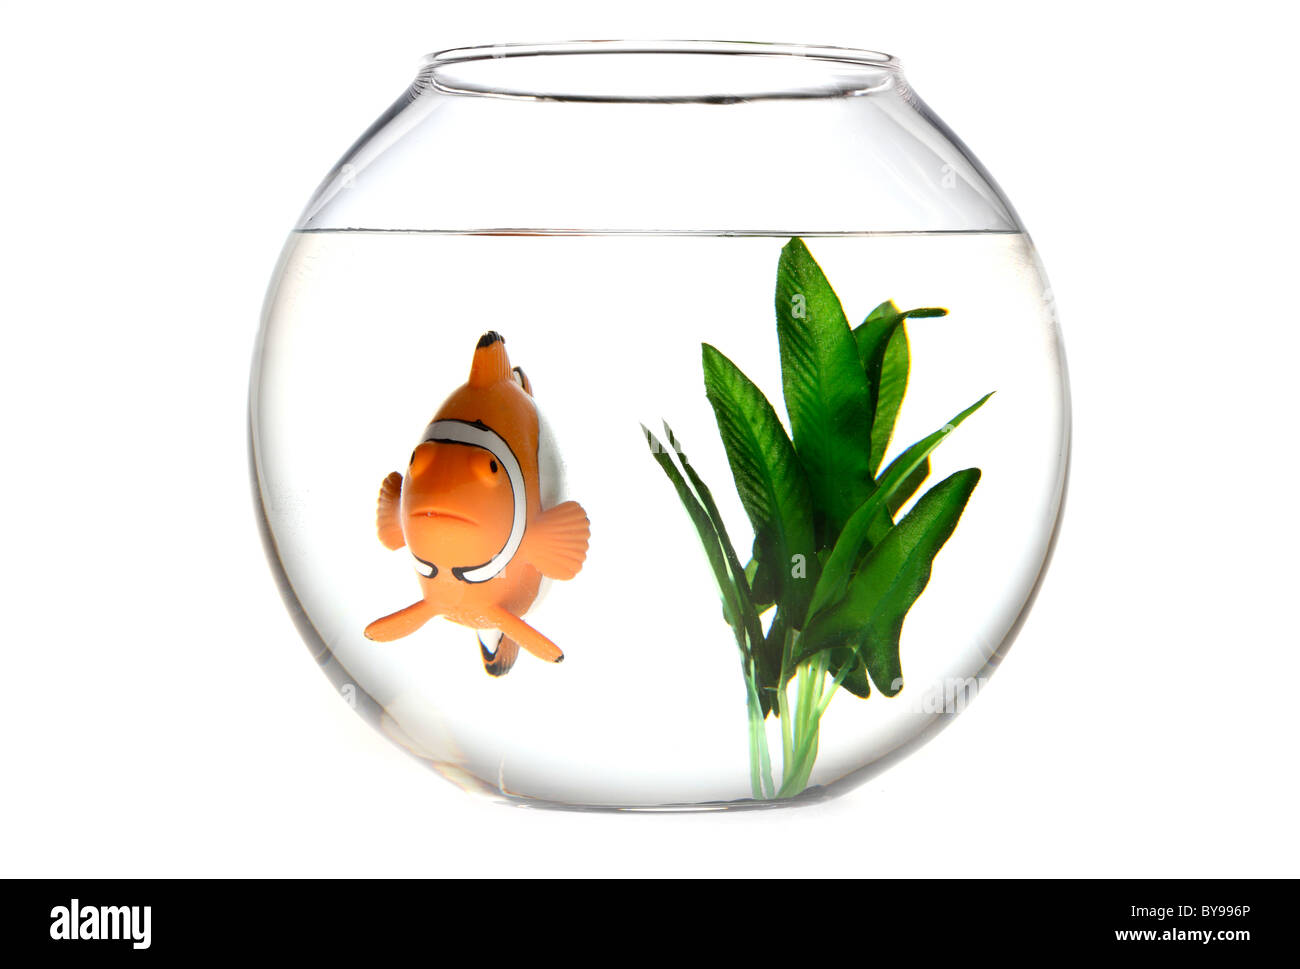 Clown fish nemo in a fish bowl stock photo royalty free for Fish in a bowl